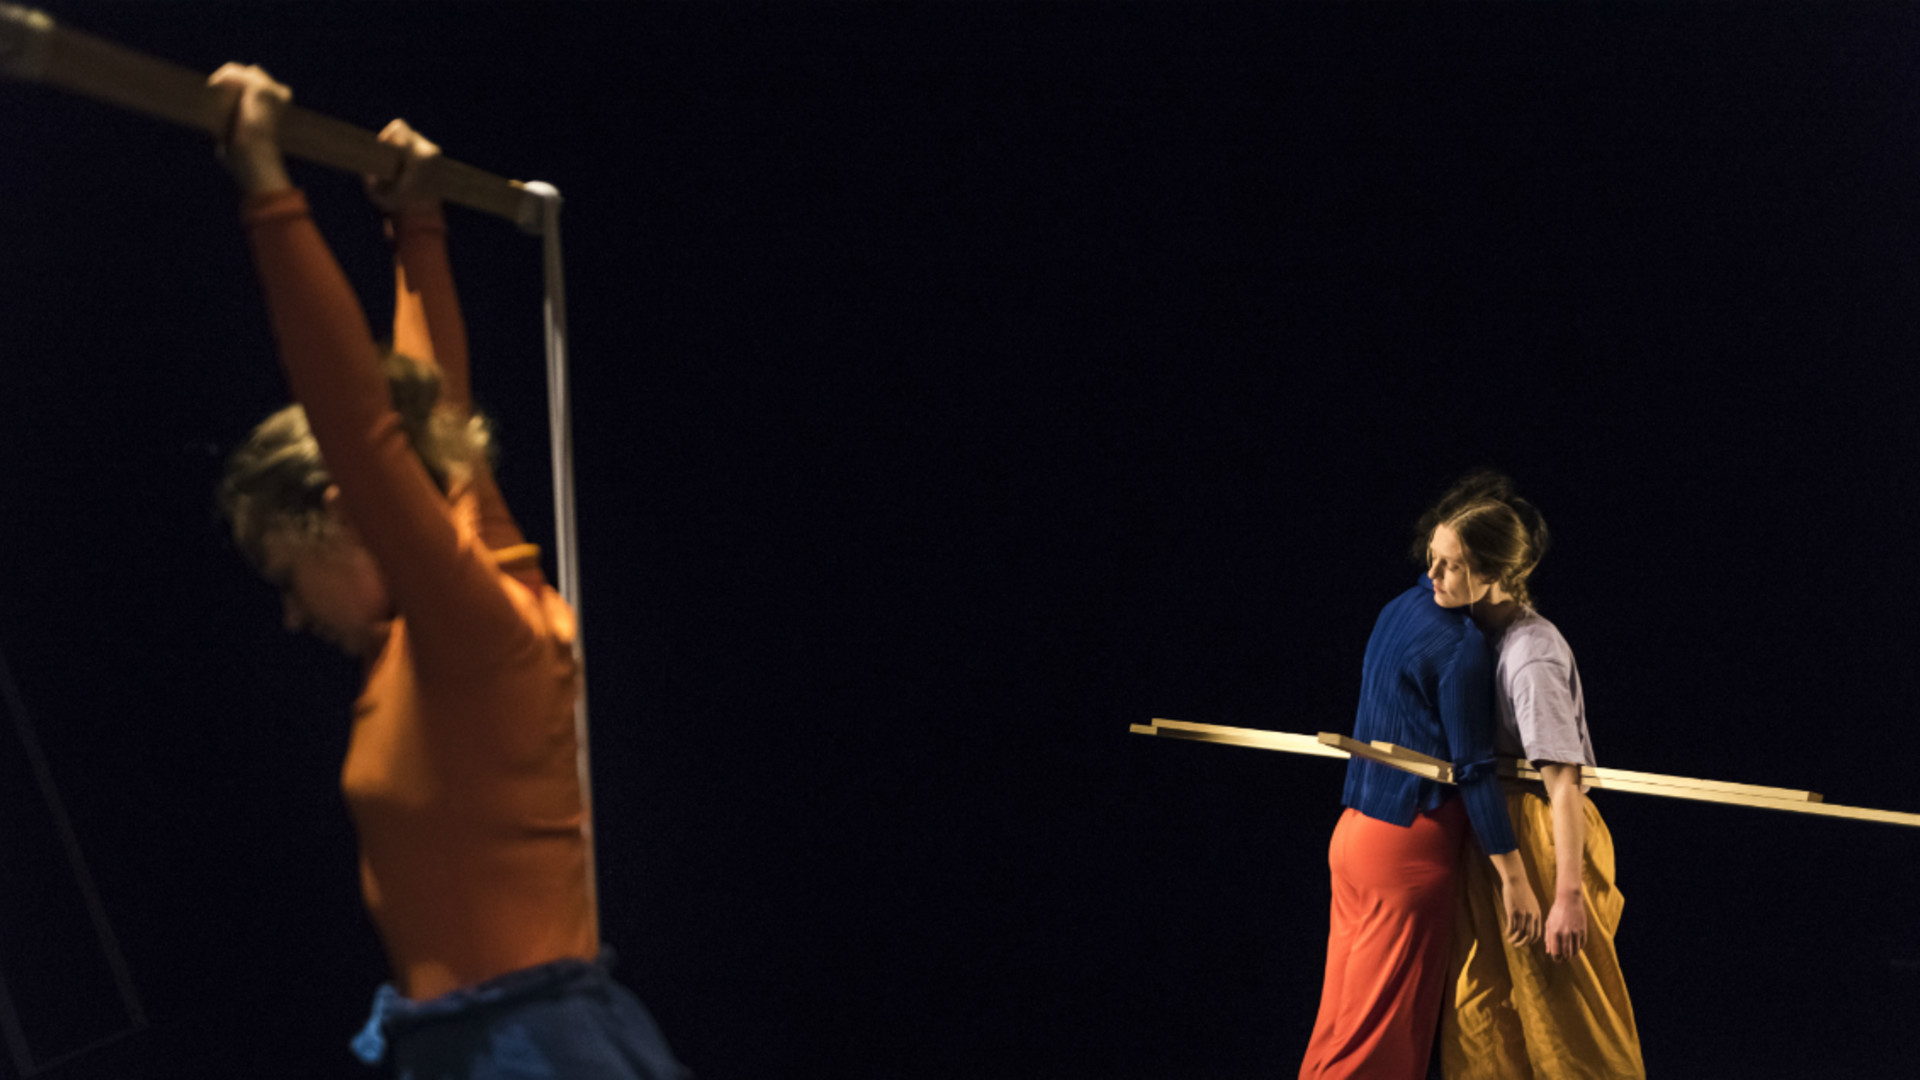 A dancer in the foreground stands and holds up a wooden frame, while two dancers embrace int he background with long wooden poles suspended at their waists